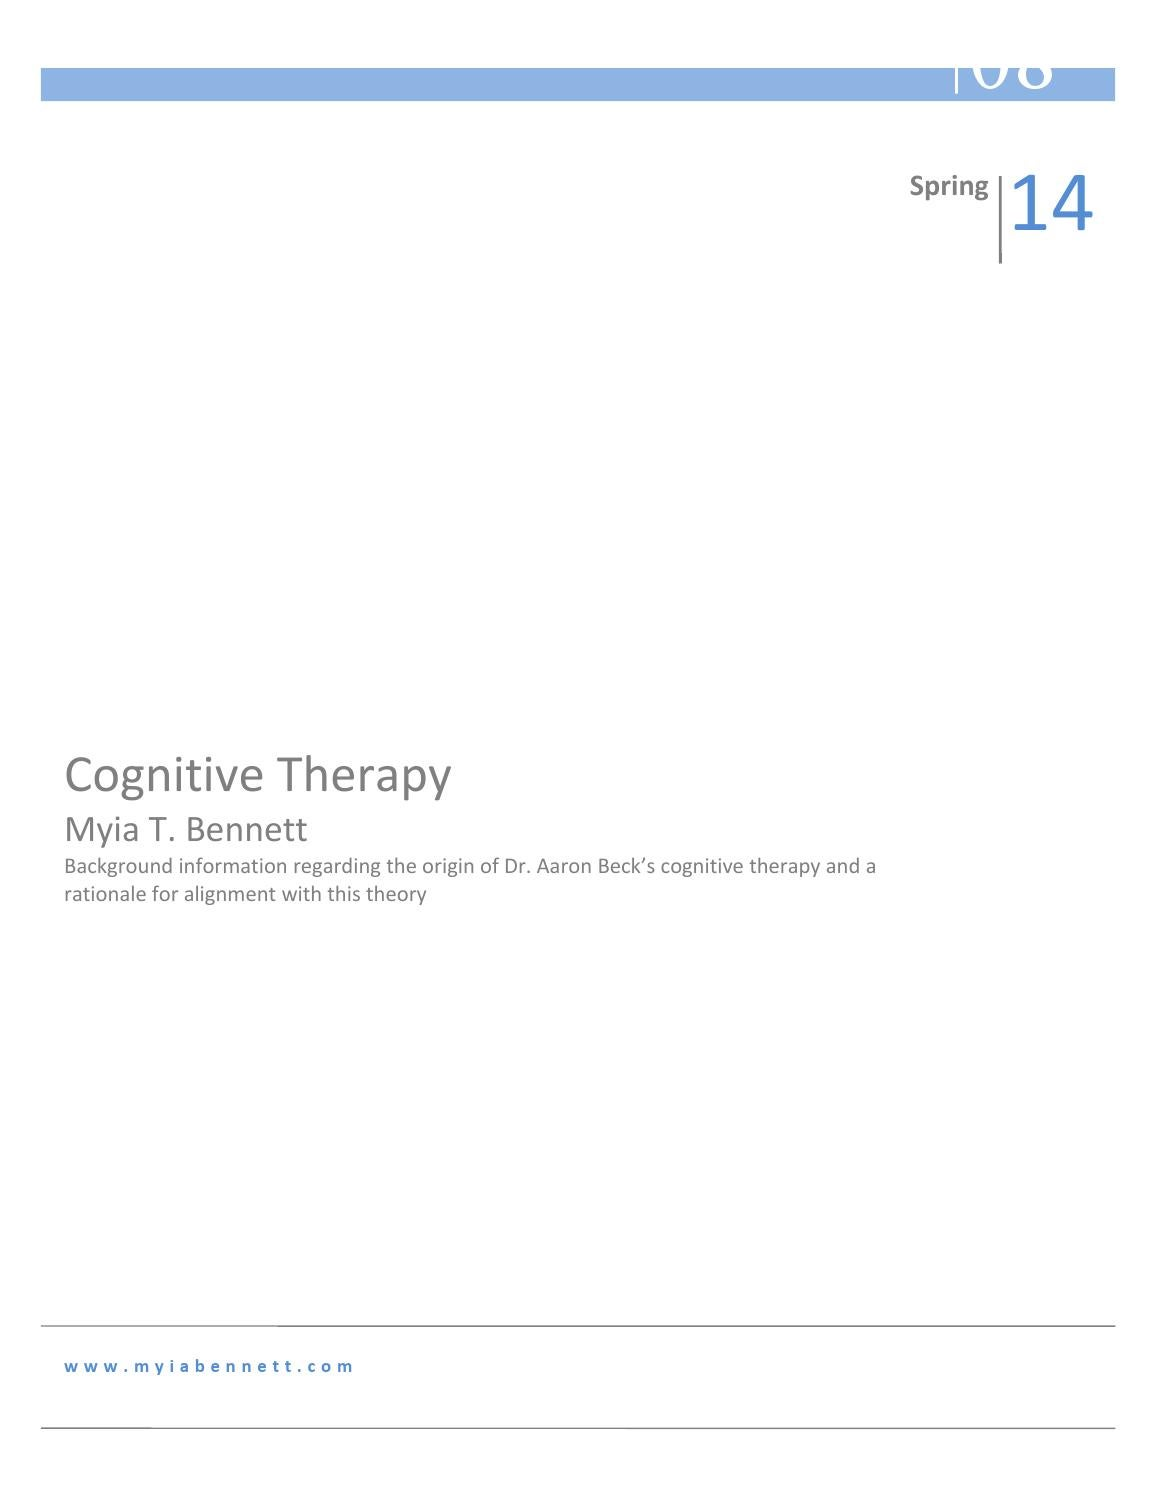 Cognitive Therapy: A Theoretical Orientation by Myia T